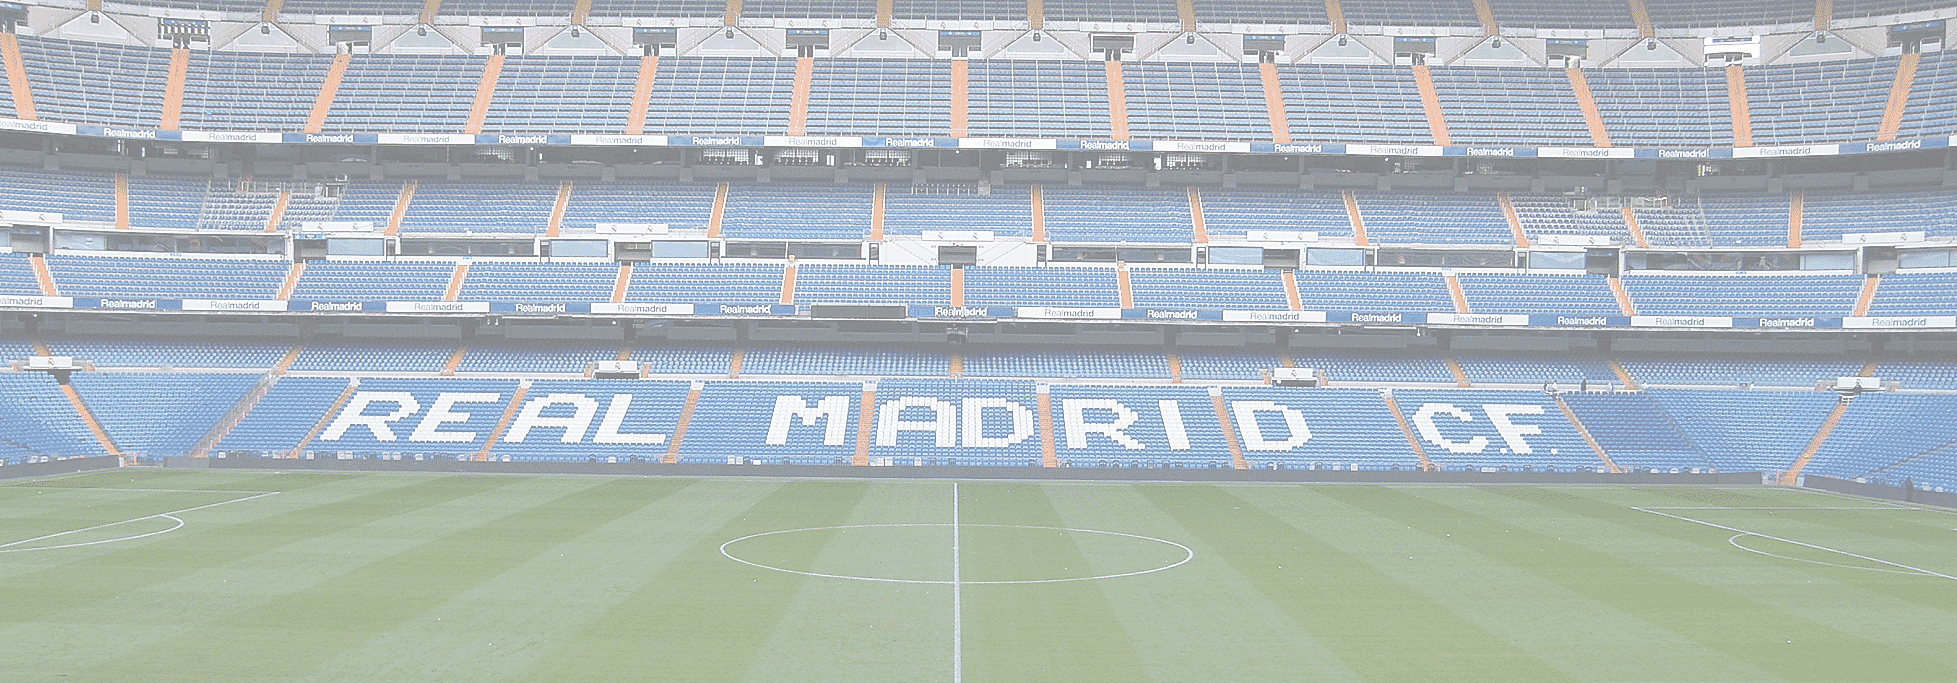 Real Madrid Tickets 2020 2021 Compare And Buy Tickets Safeticketcompare Com